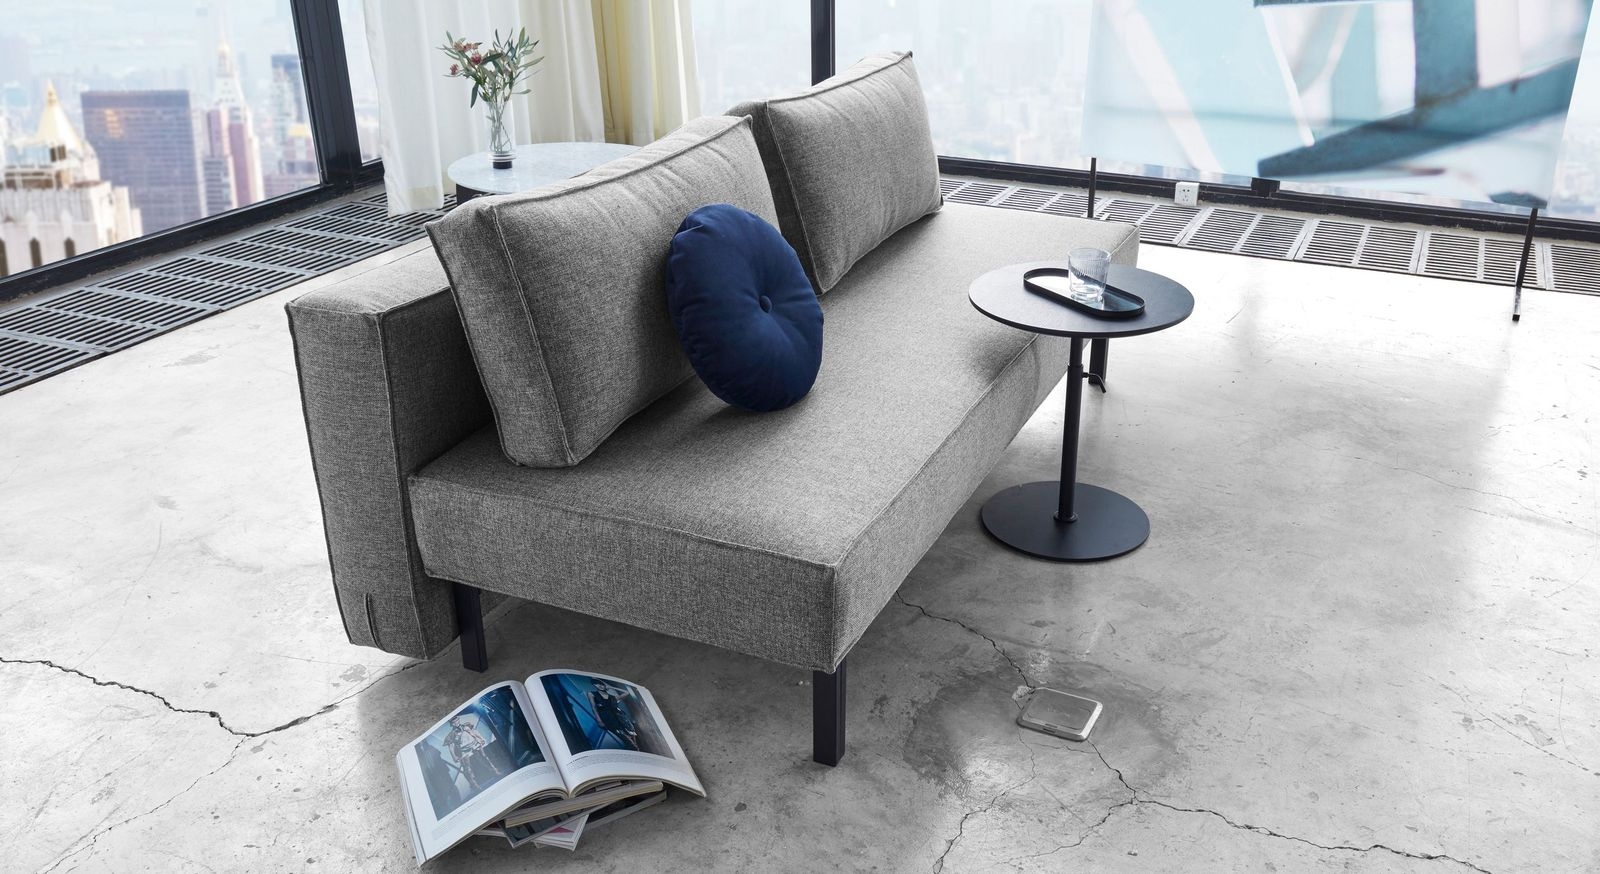 Schlafsofa Ellwood in grauem Twist-Stoff